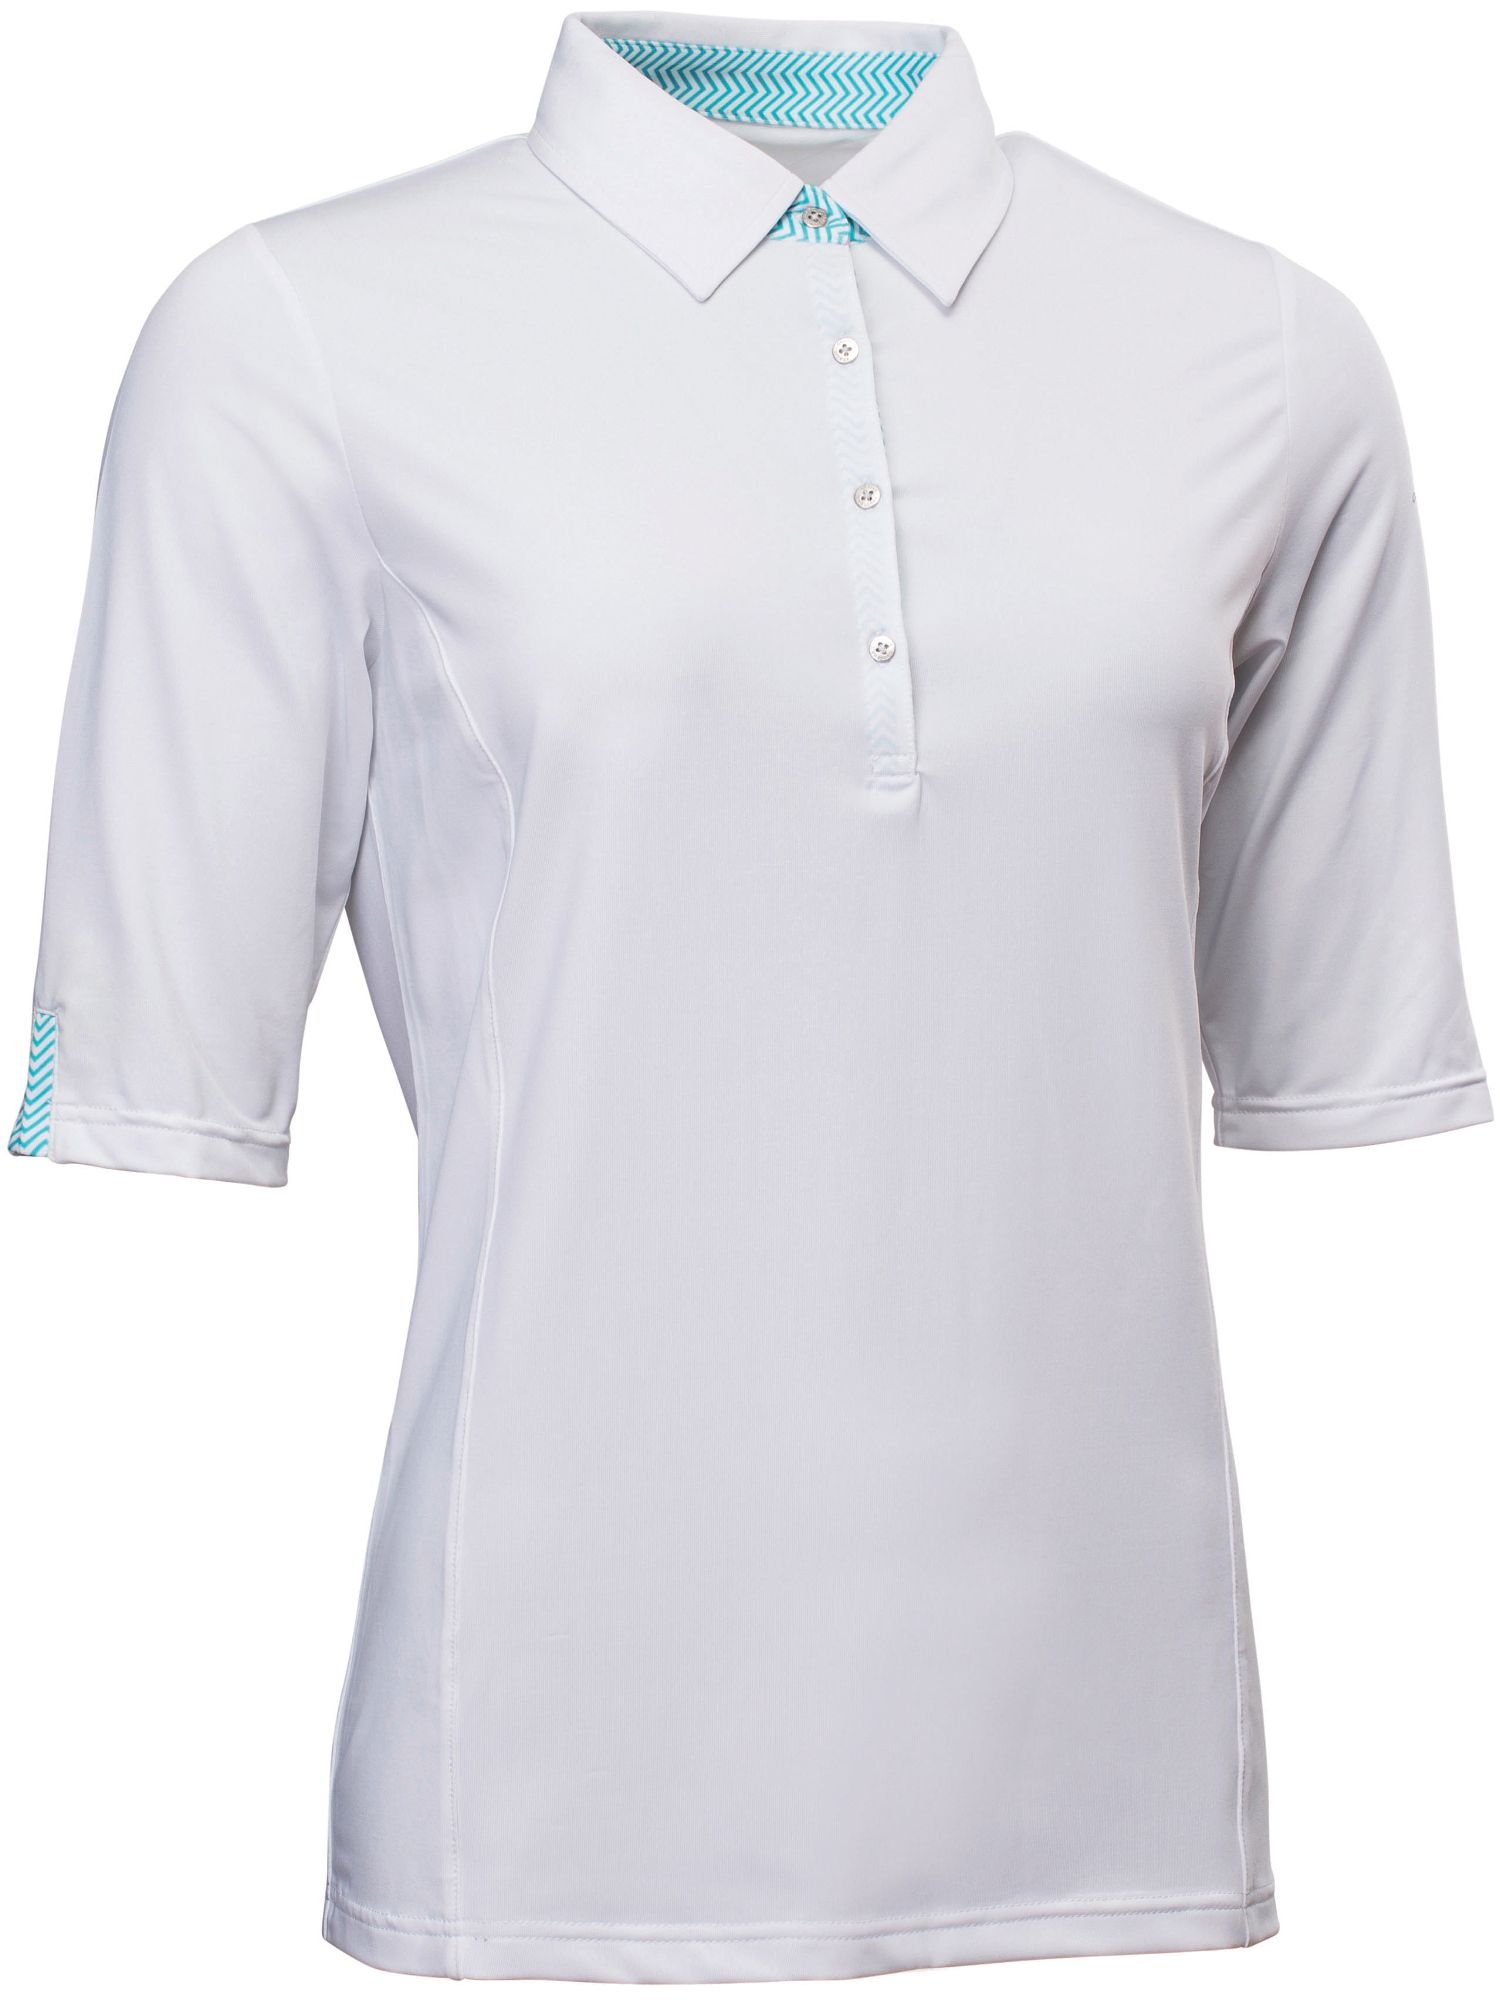 Abacus Karin 12 Sleeve Polo, White